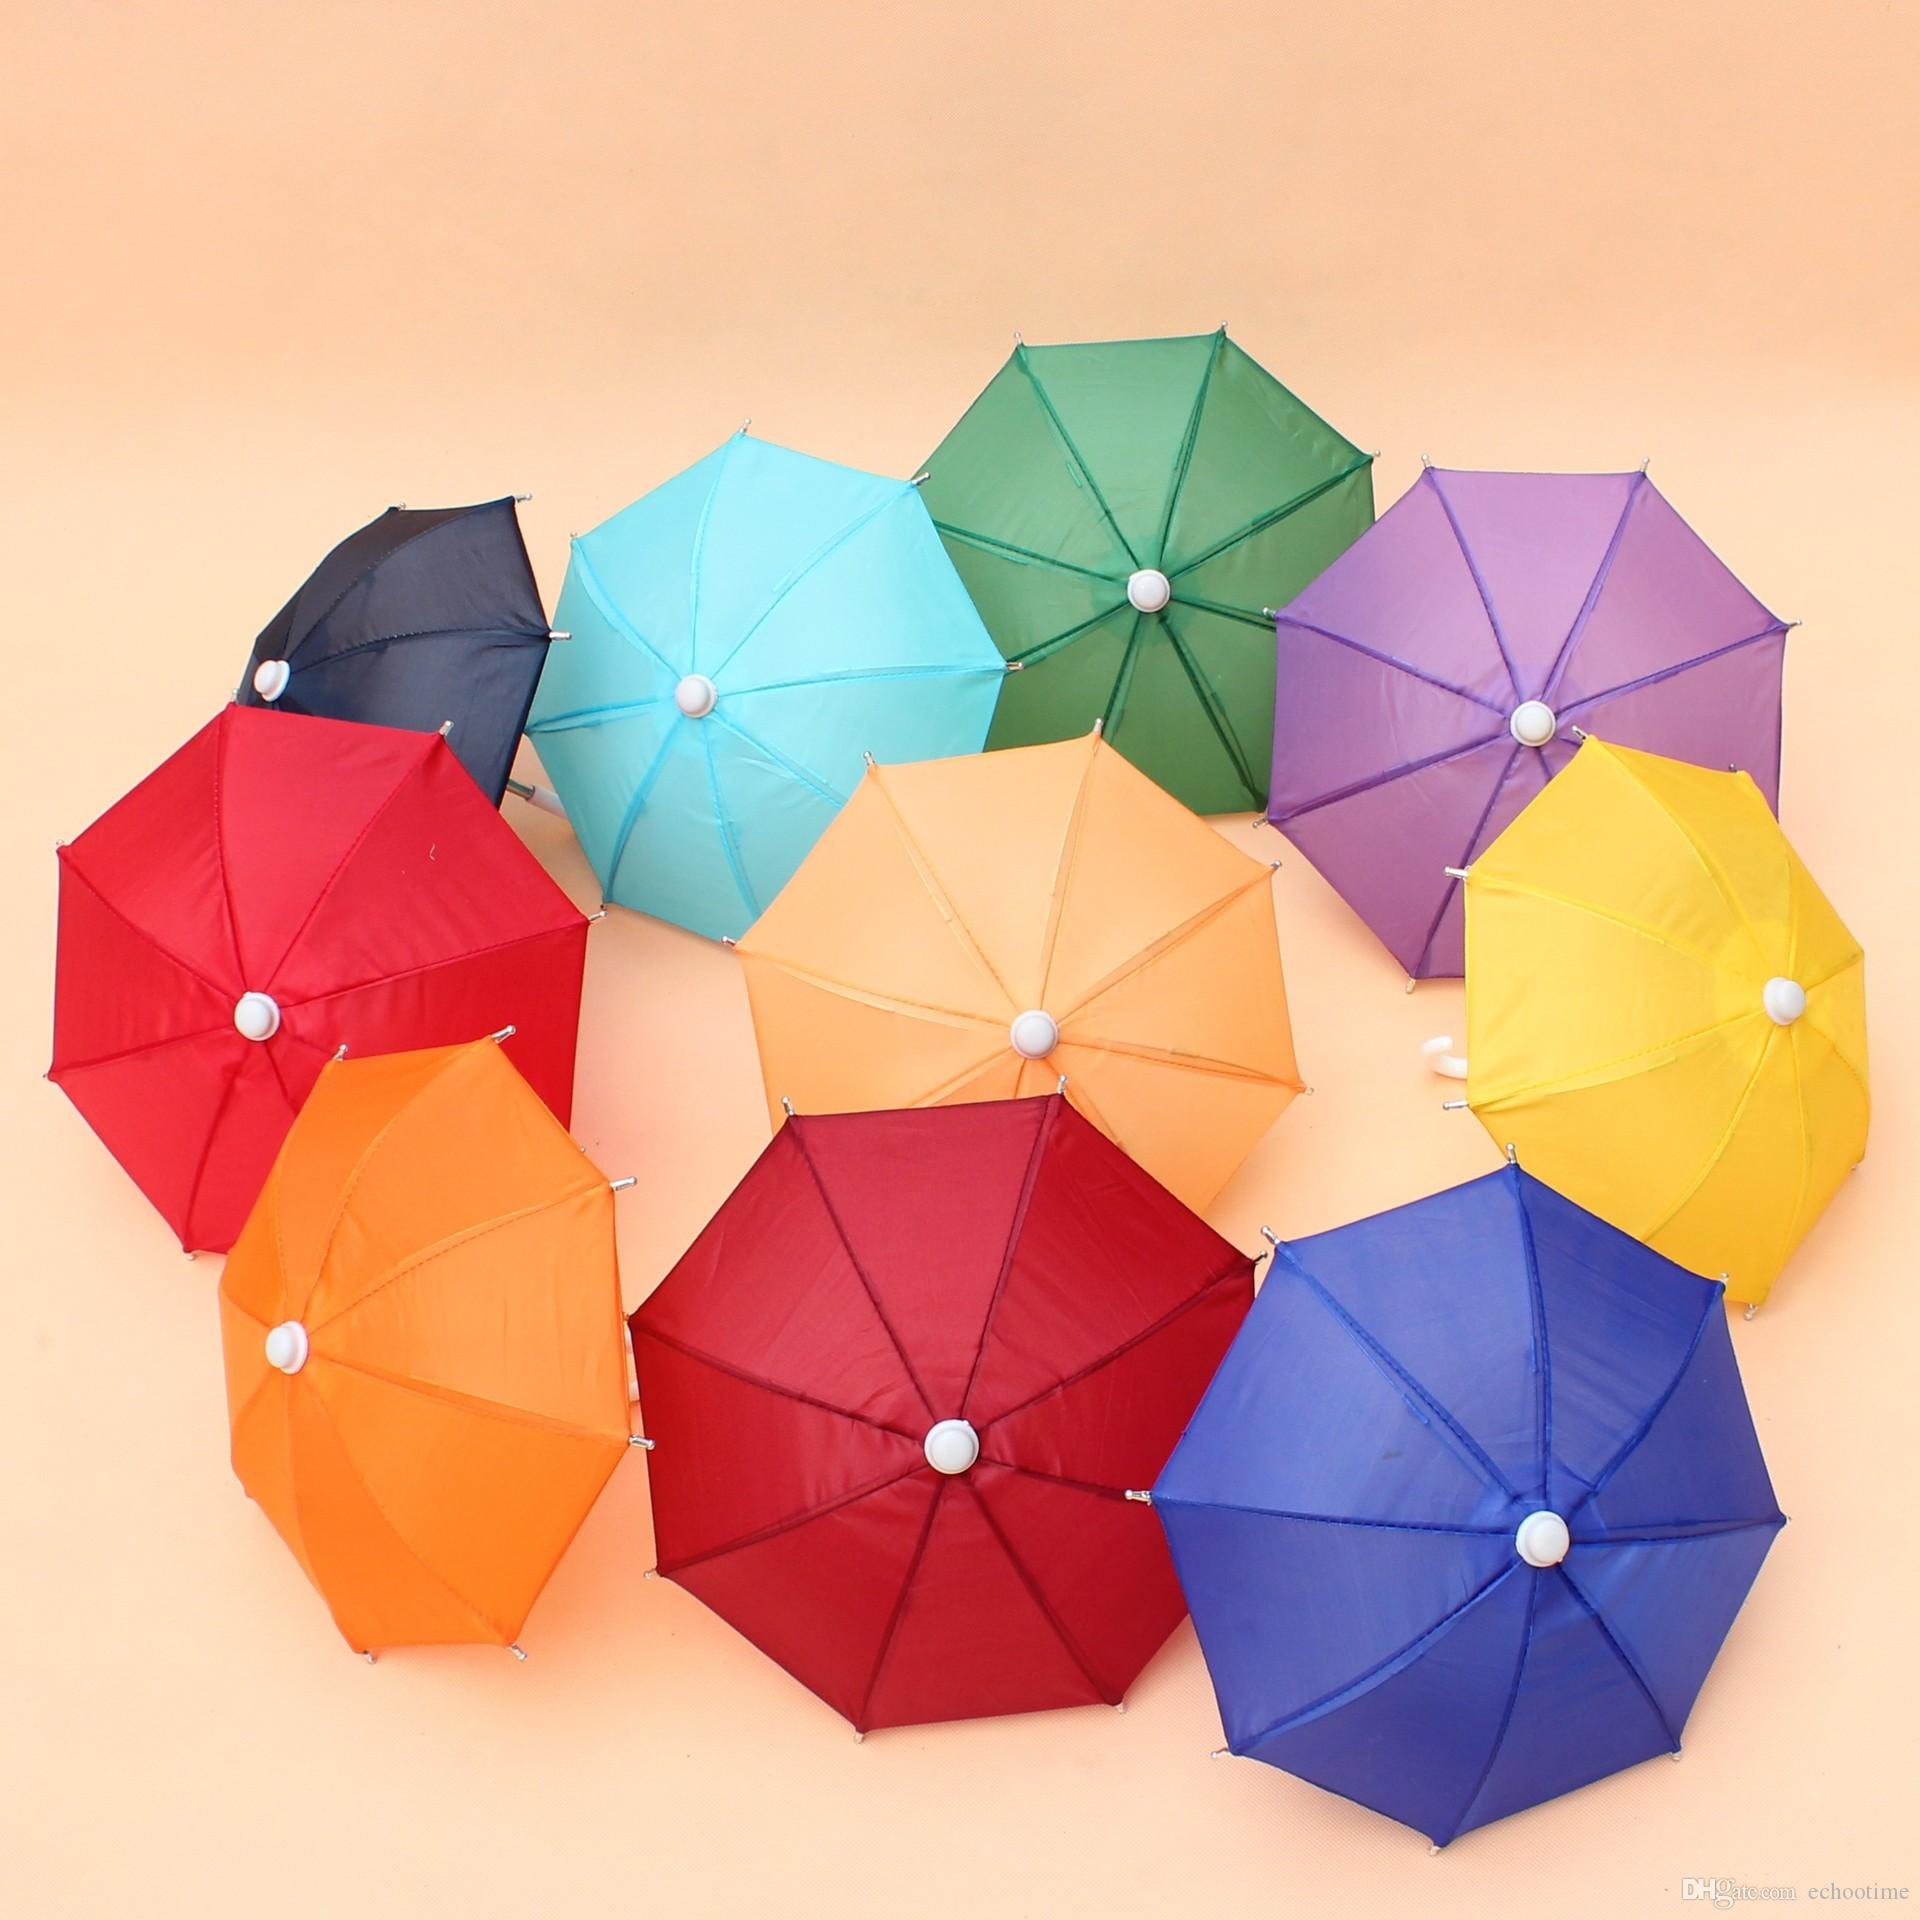 Mini Simulation Umbrella For Kids Toys Cartoon Many Color Umbrellas Decorative Photography Props Portable And Light